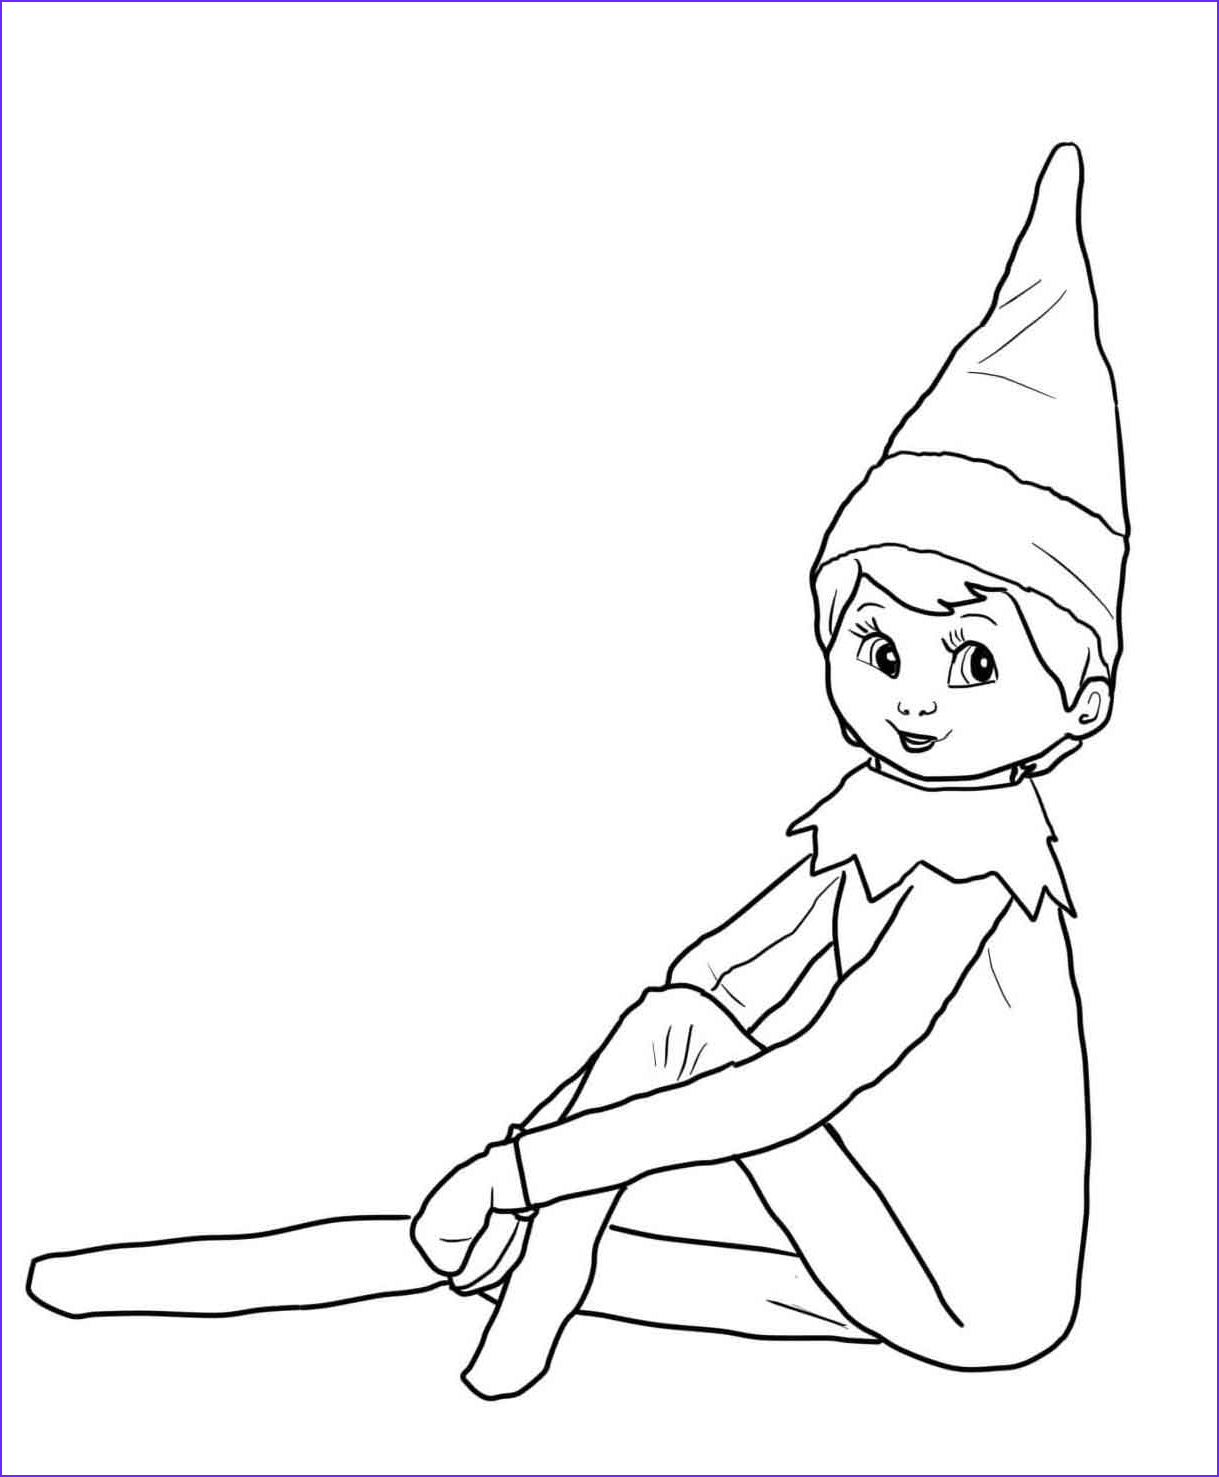 Elf On the Shelf Coloring Sheet Inspirational Photos Free Coloring Pages Of Christmas Elf On the Shelf Coloring